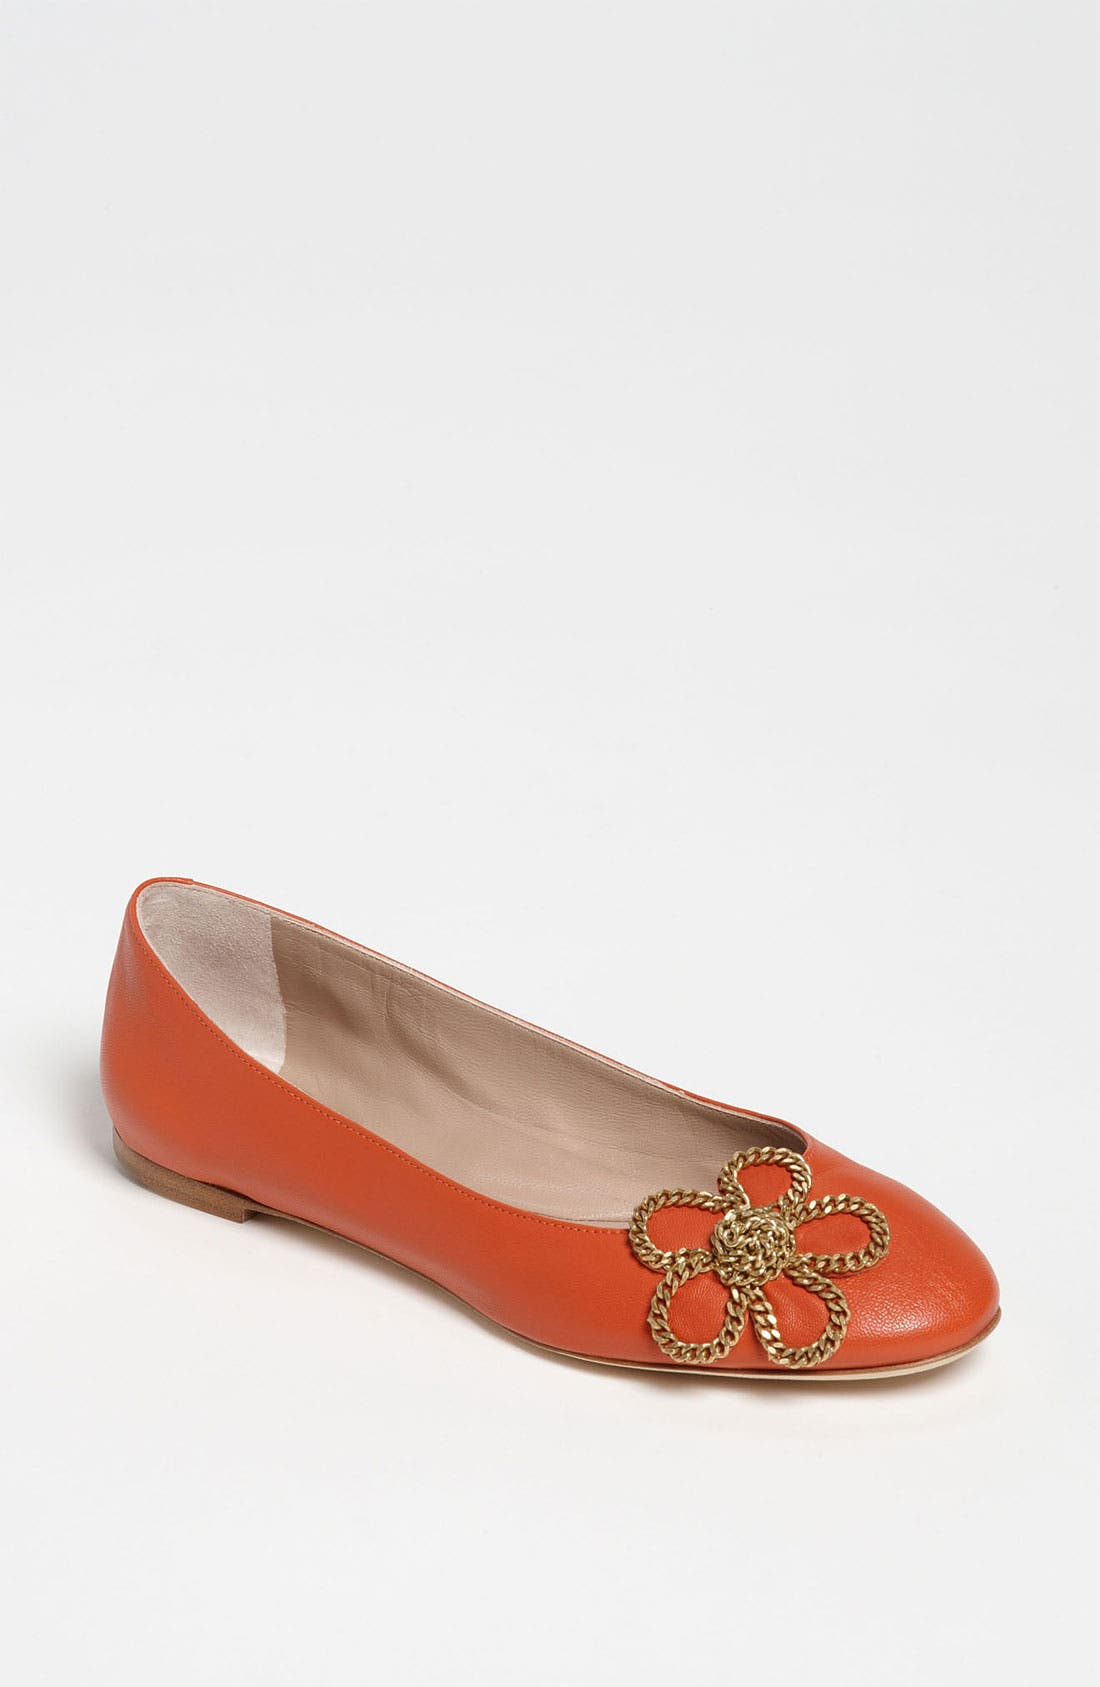 Alternate Image 1 Selected - Chloé 'Zoe' Ballet Flat (Nordstrom Exclusive)